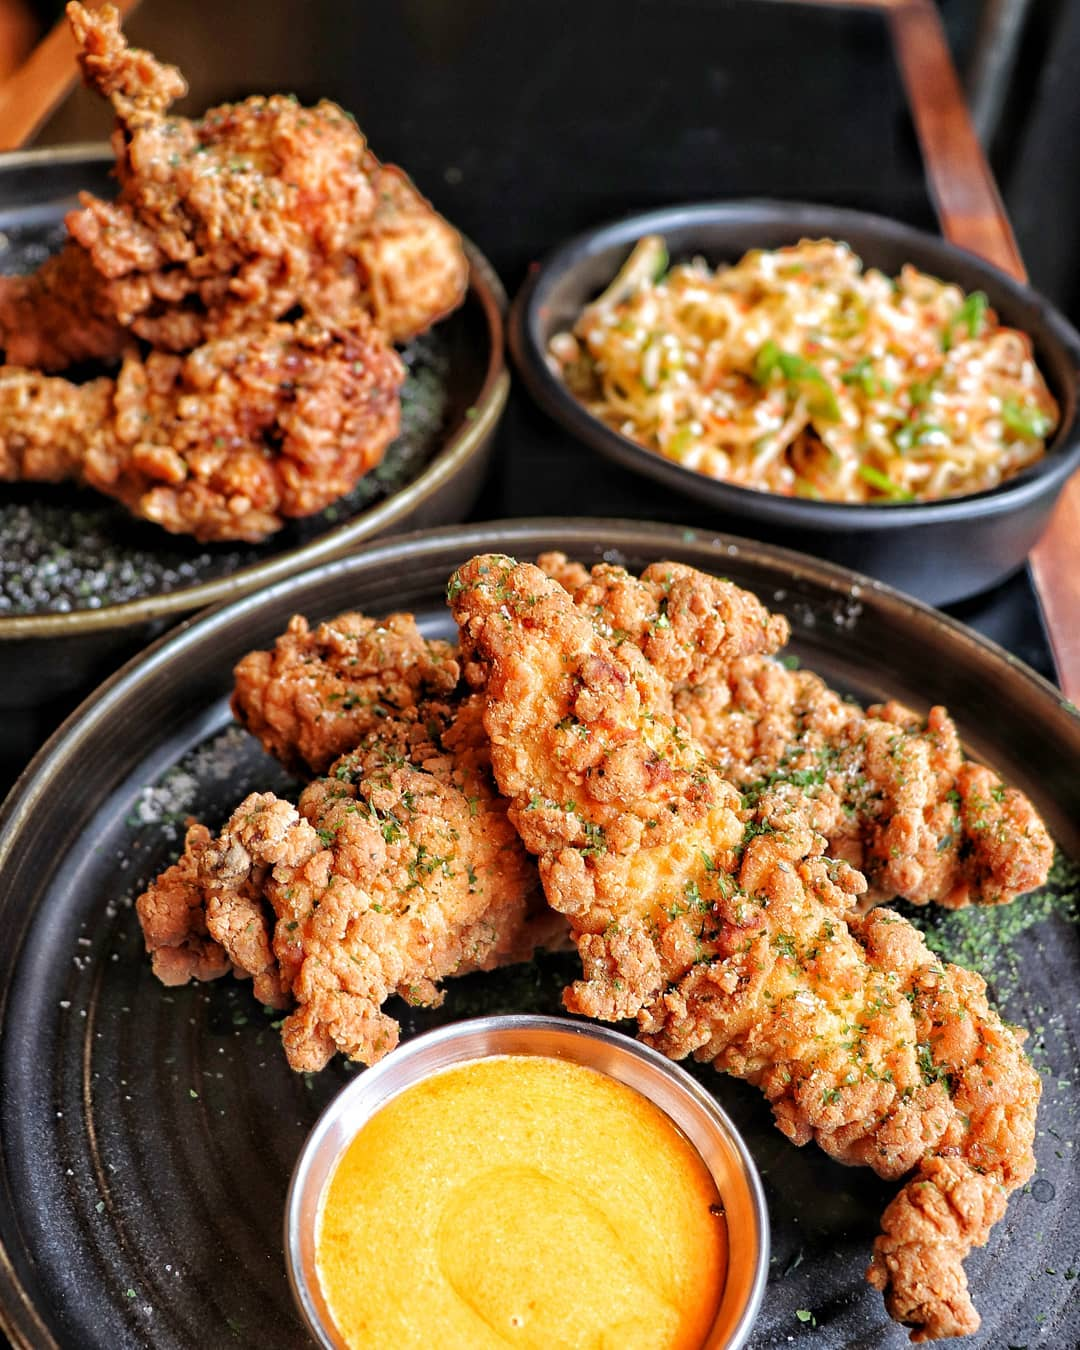 The Seriously Insta Worthy Fried Chicken Restaurant In Soho